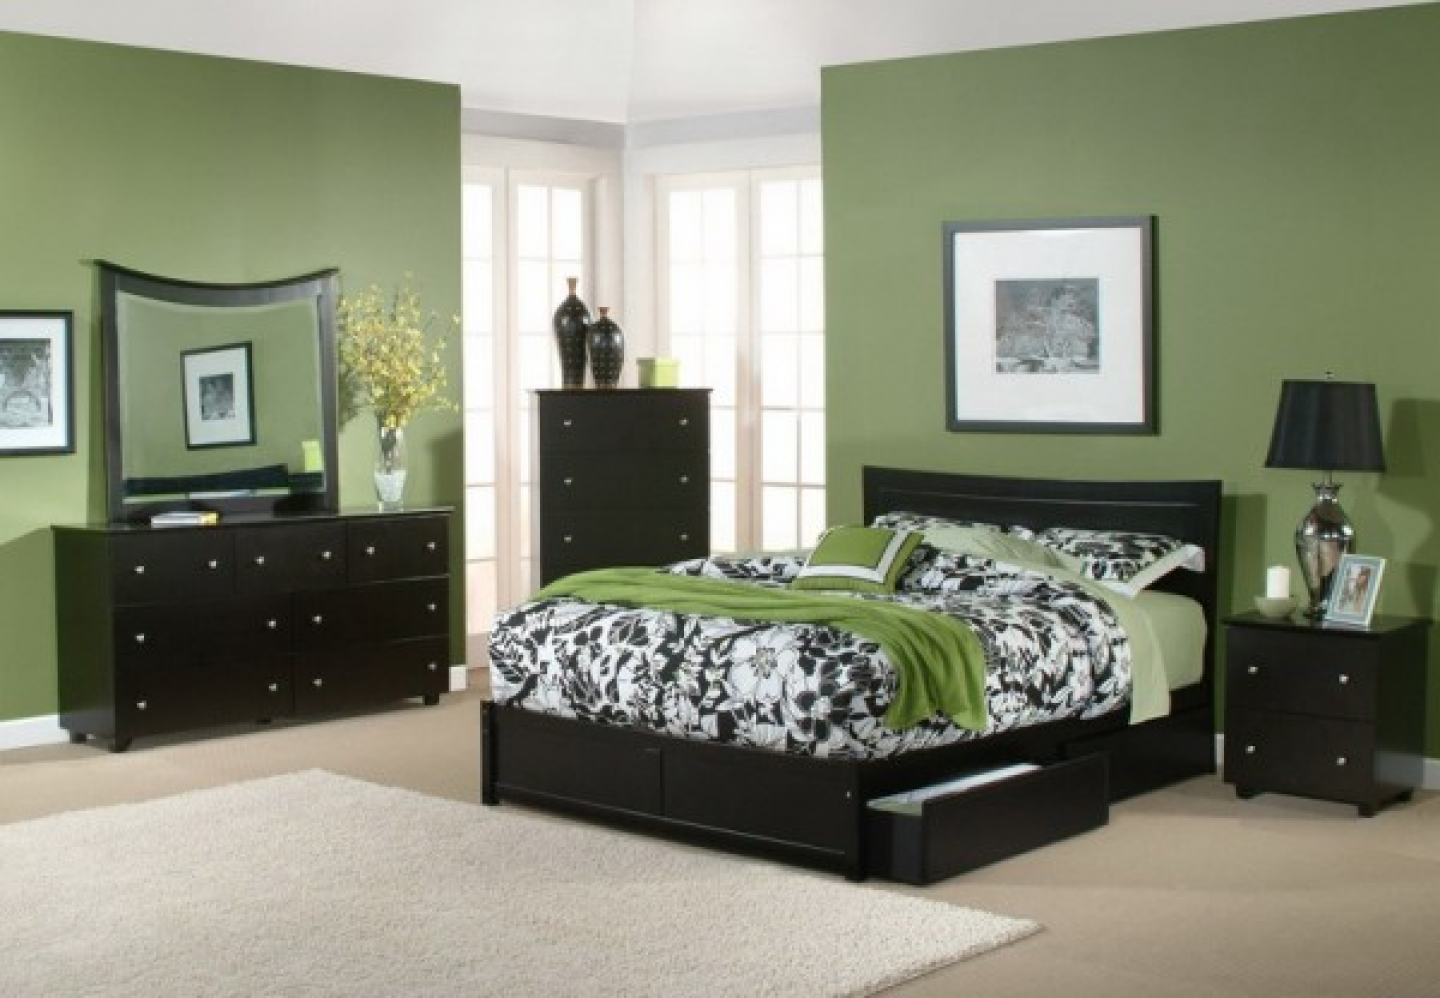 Master Bedroom Color Schemes Master Bedroom Color Schemes Large And Beautiful Photos Photo